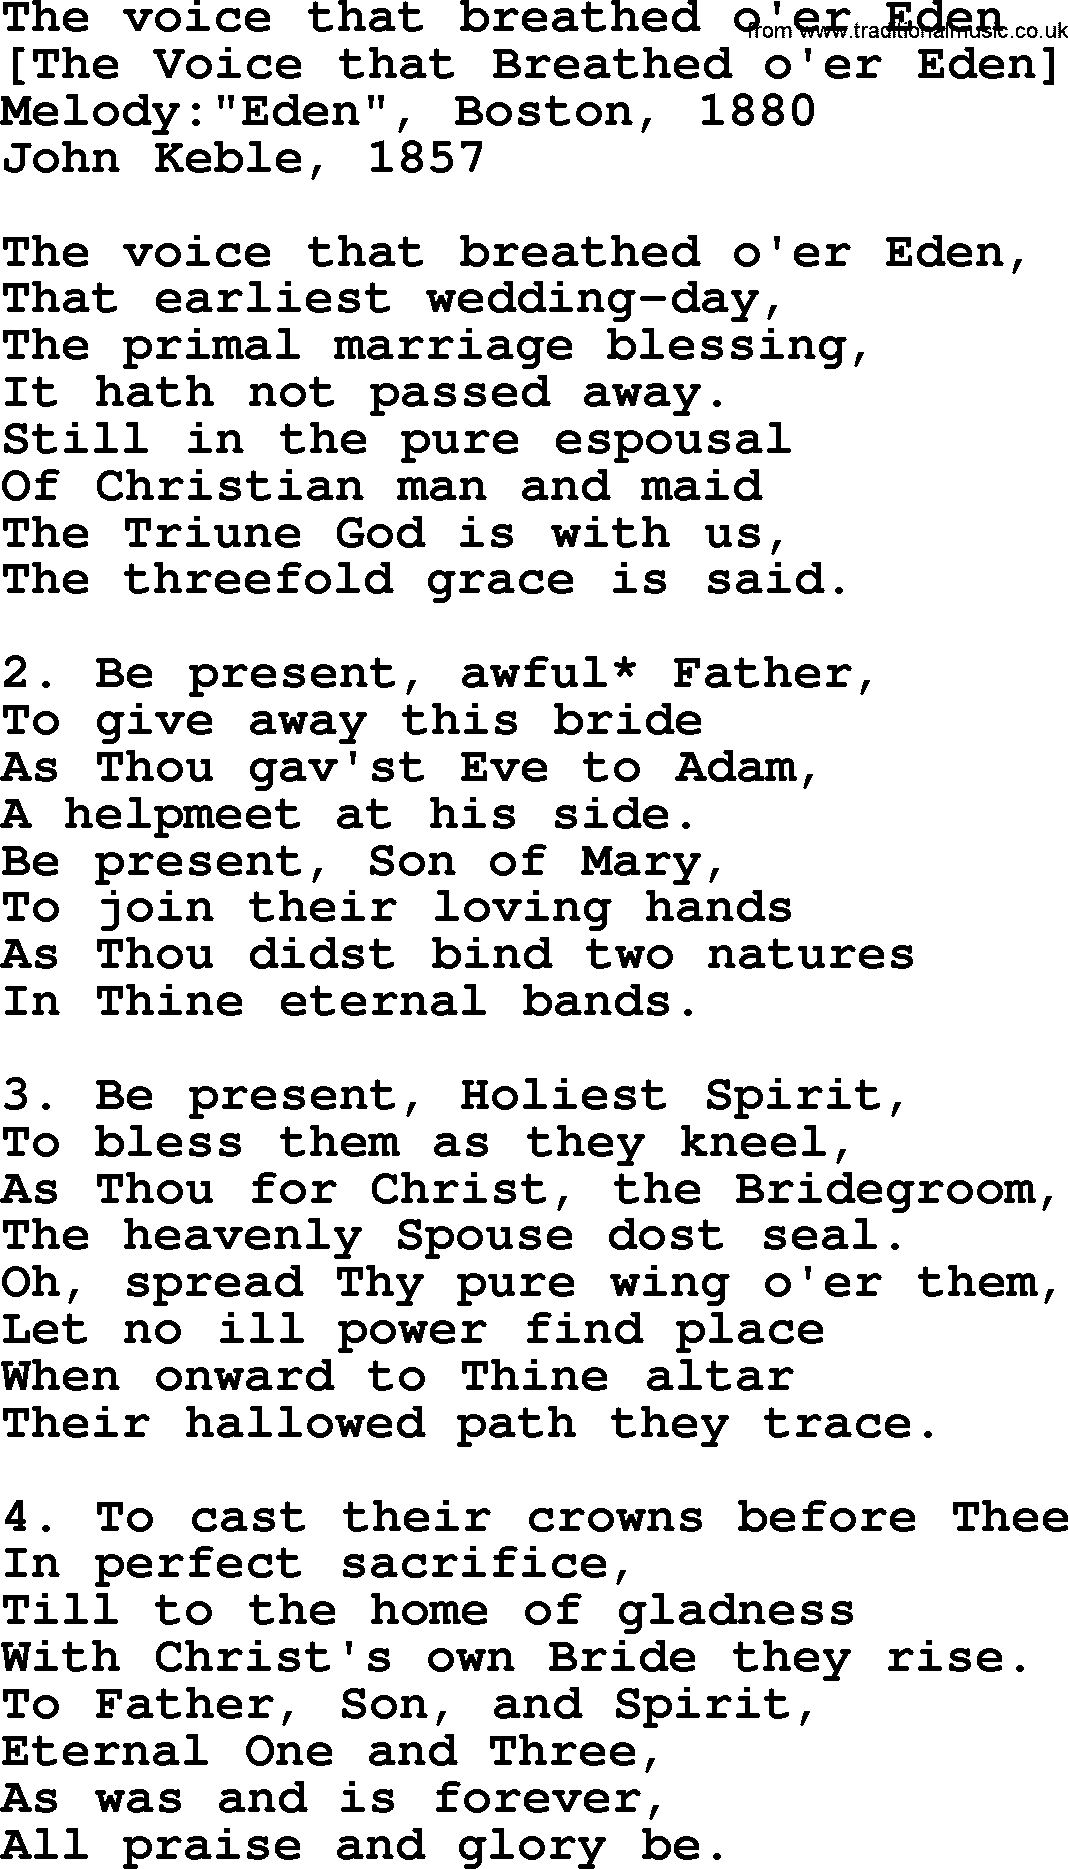 Old English Song Lyrics for The Voice That Breathed O'er Eden, with PDF